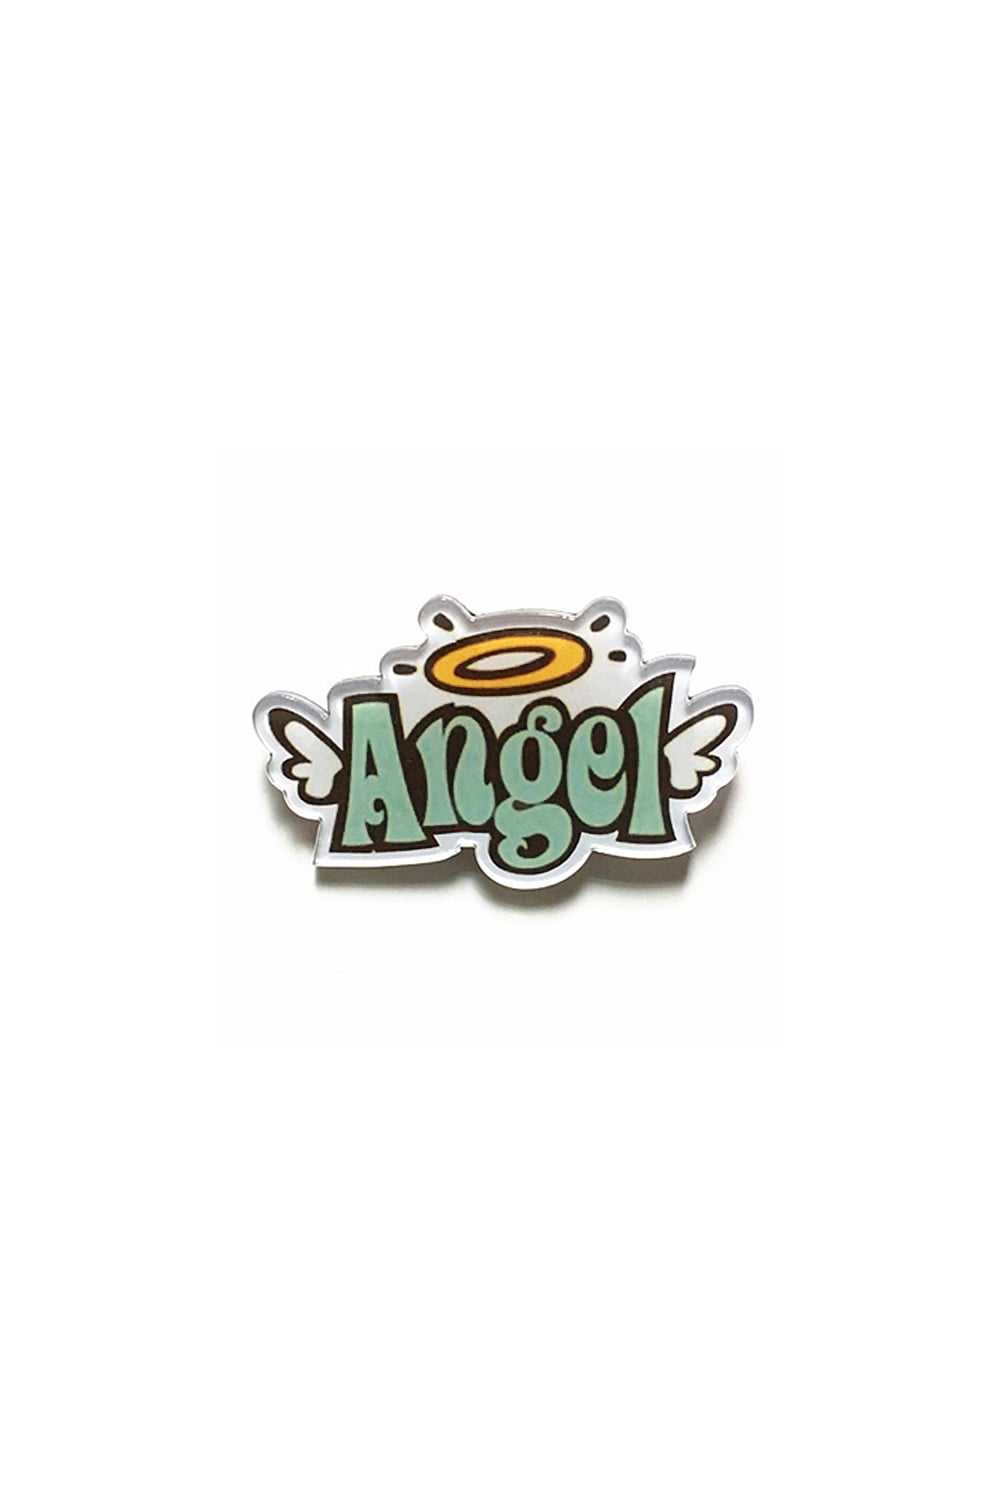 Angel Harajuku Acrylic Pin Badge